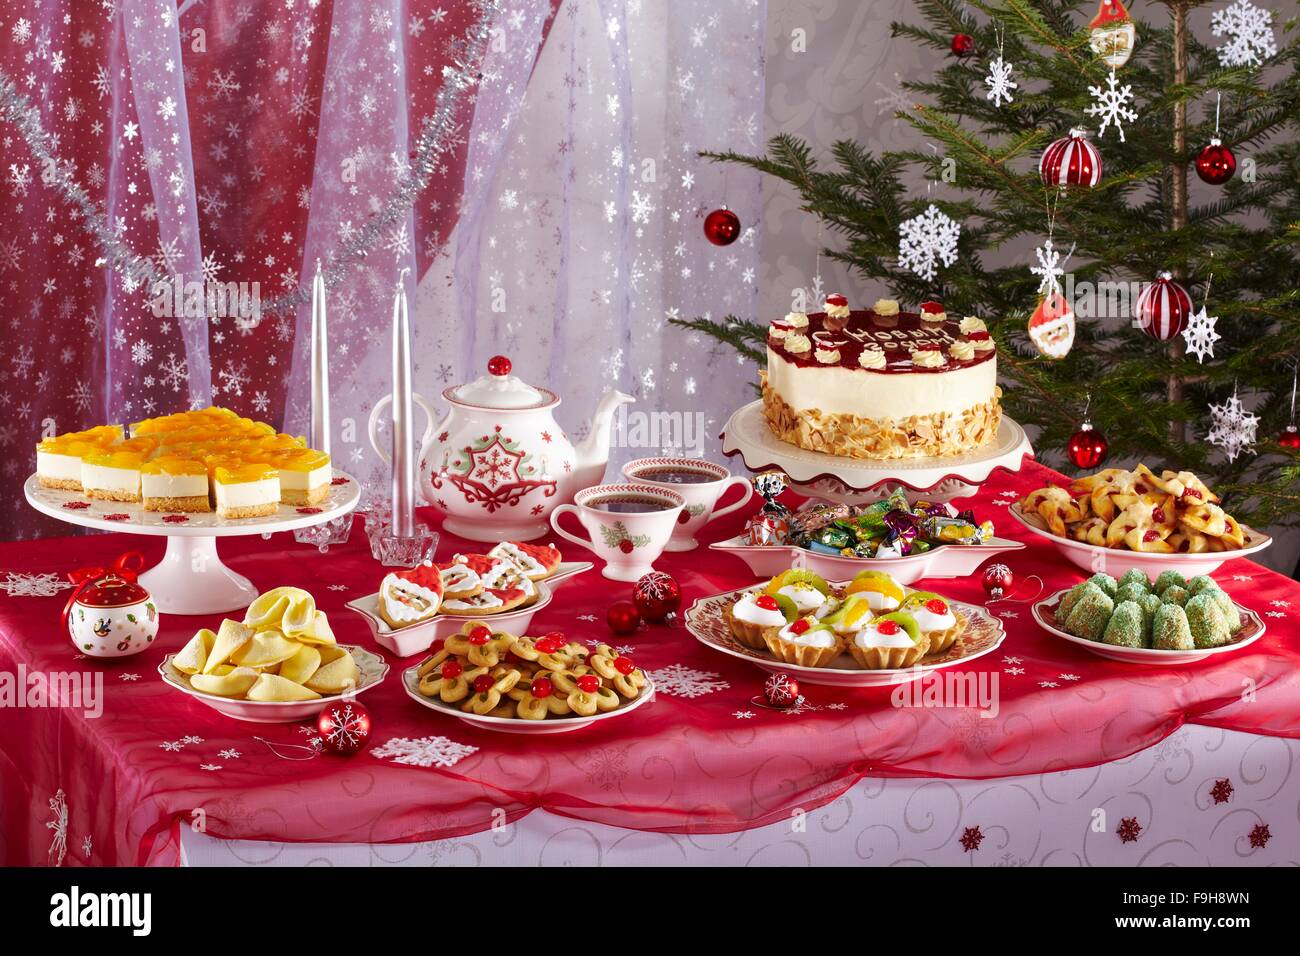 New Years Eve Menu Table High Resolution Stock Photography And Images Alamy